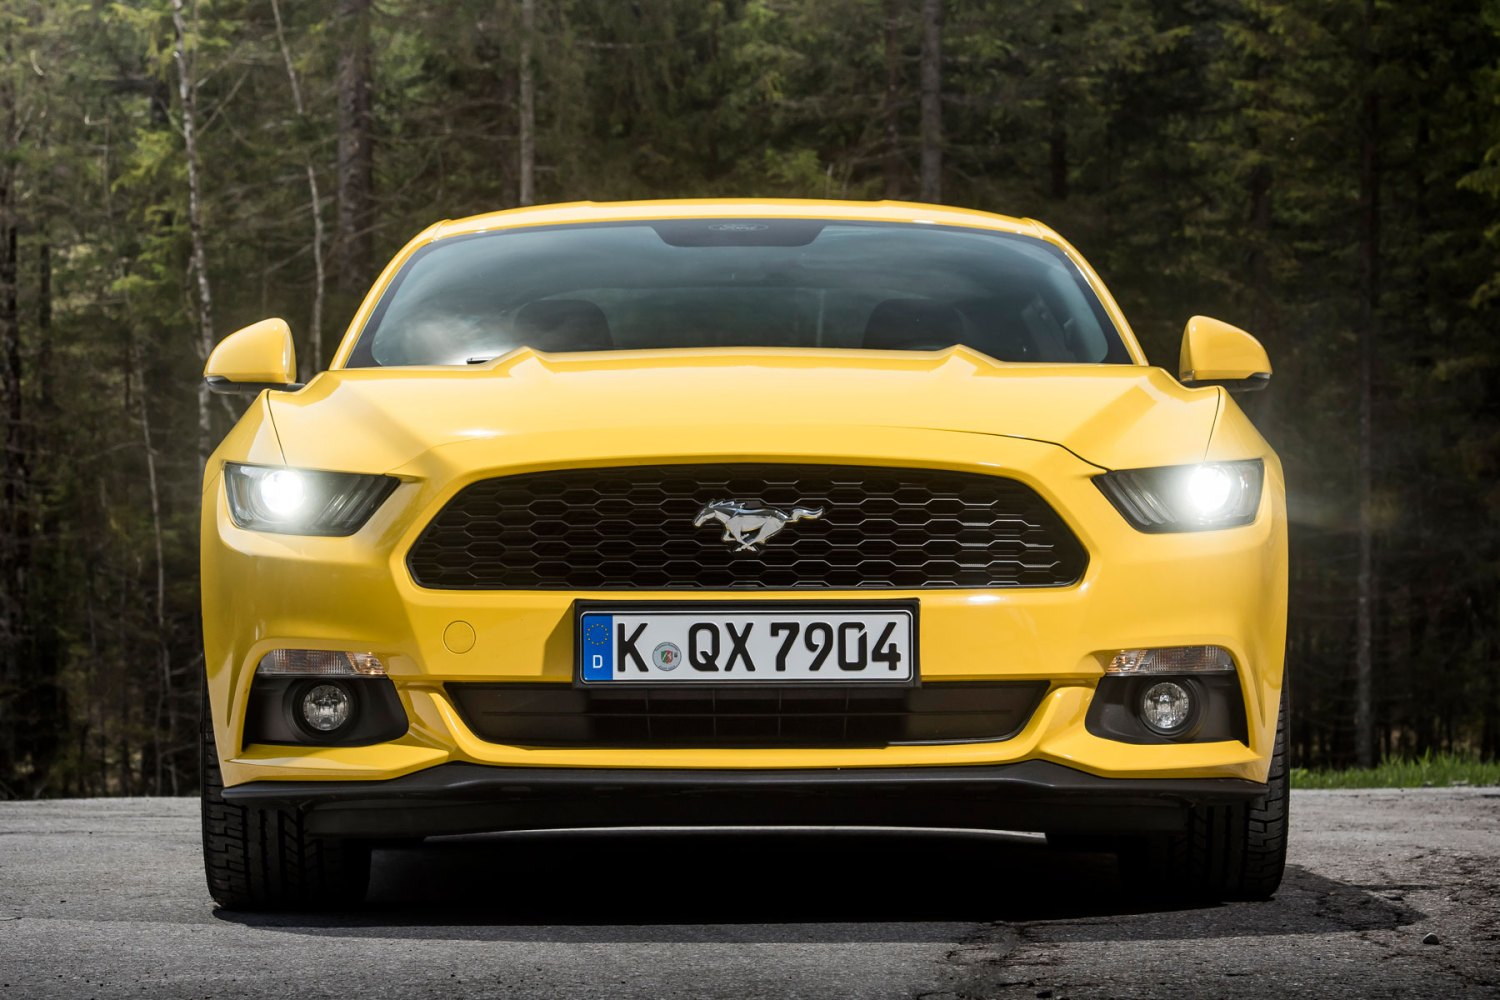 Is the Ford Mustang worth the cash?